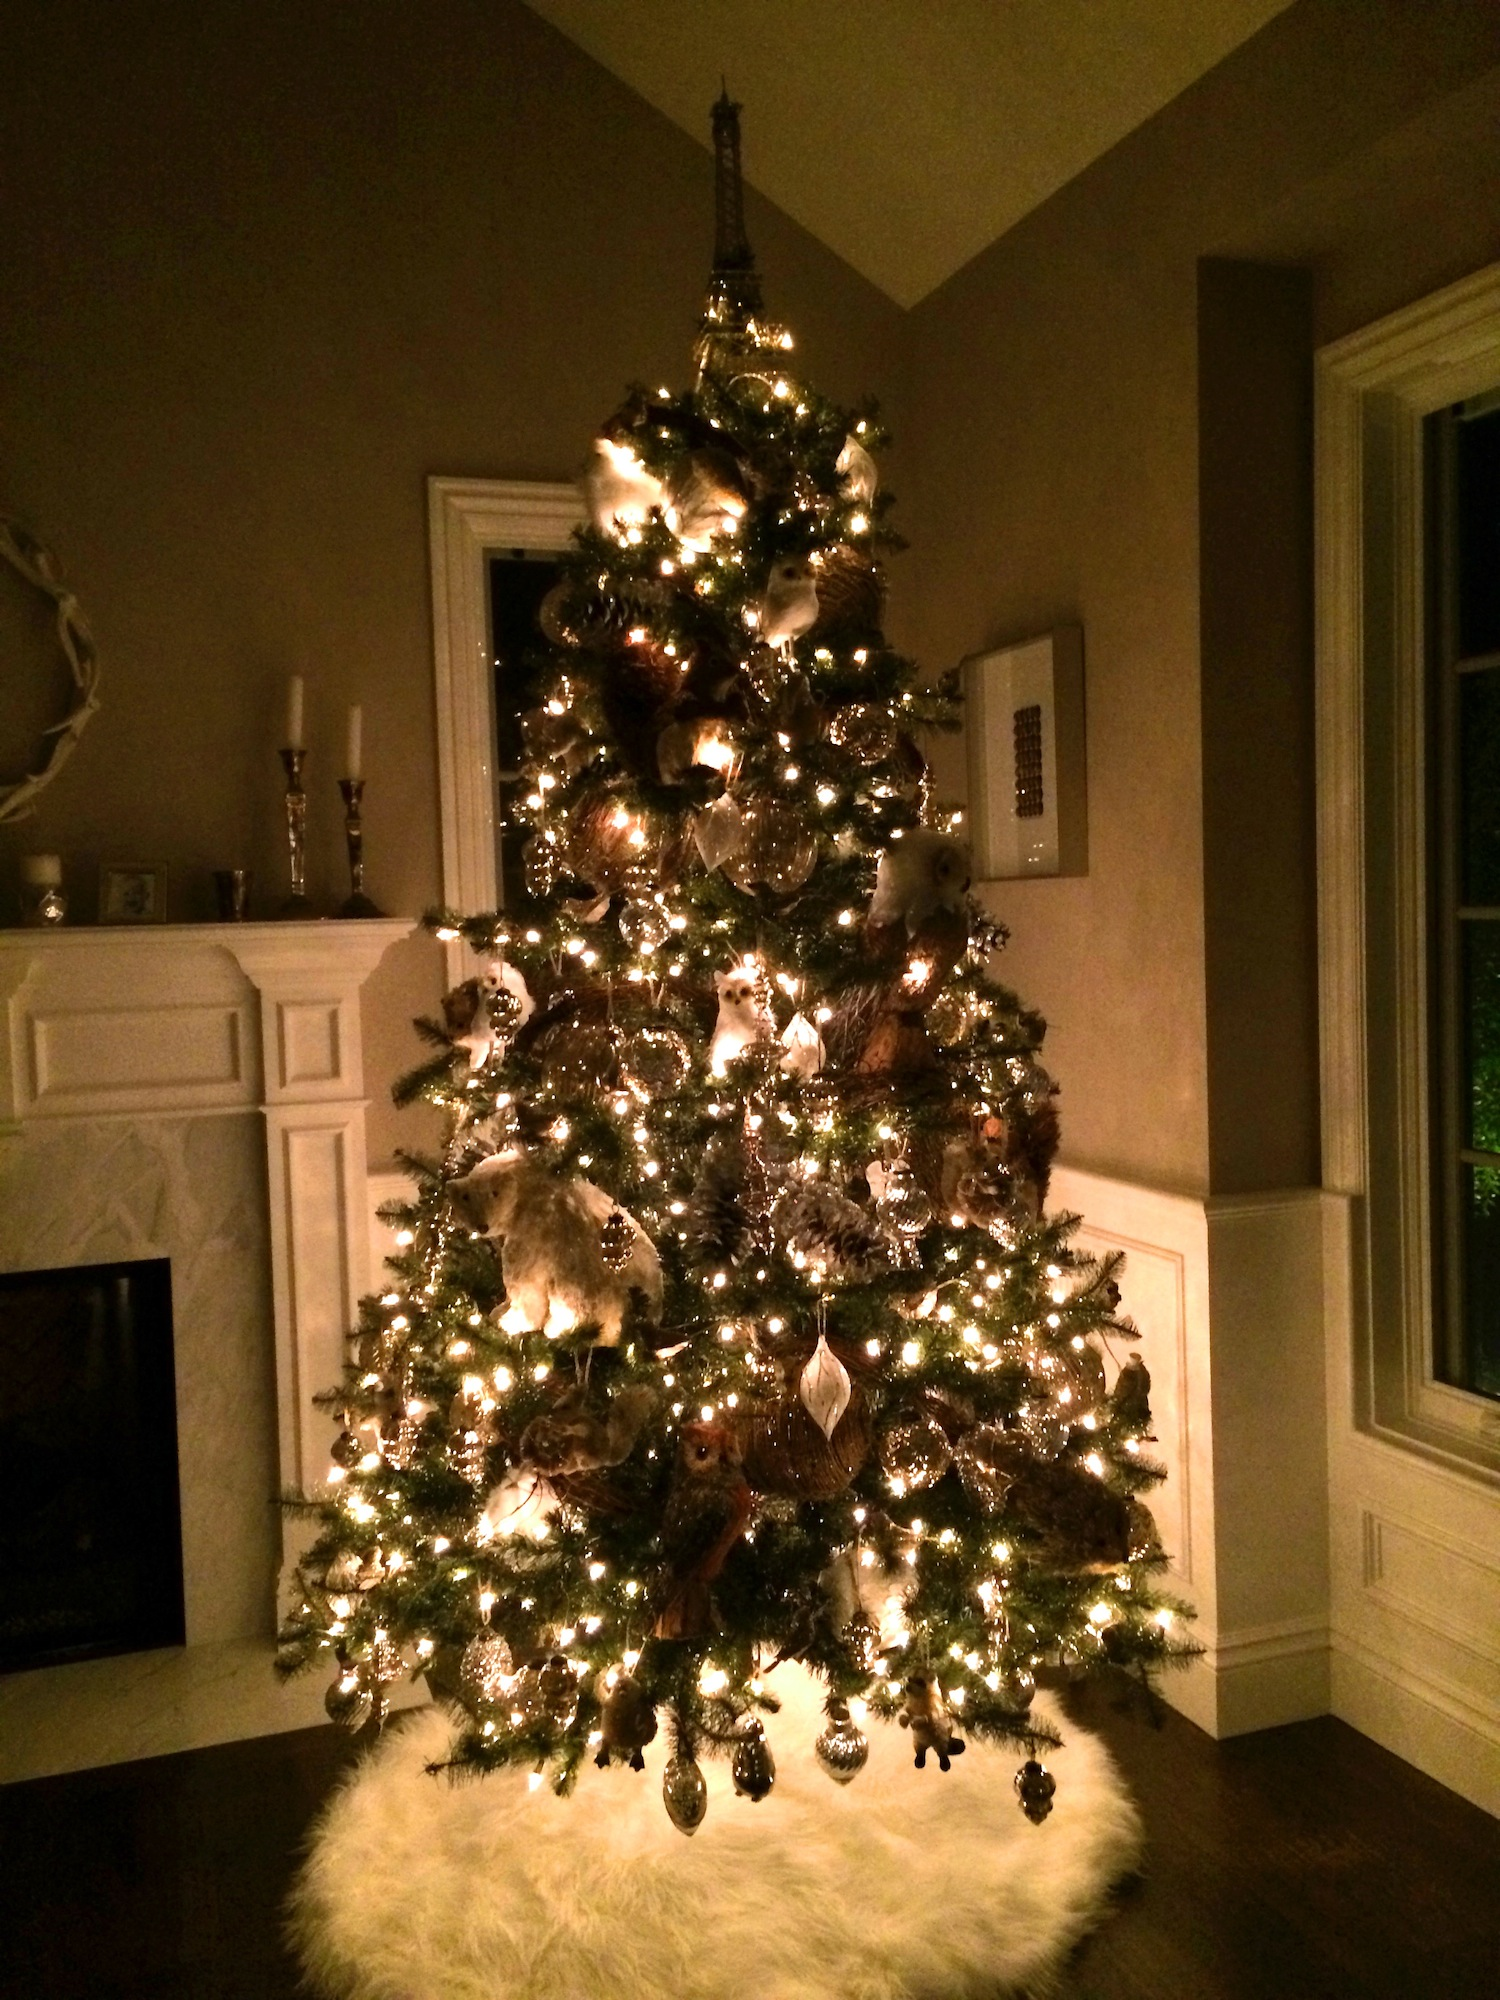 Best A Pottery Barn Christmas Tree With All The Trimmings This Month Original 1024 x 768